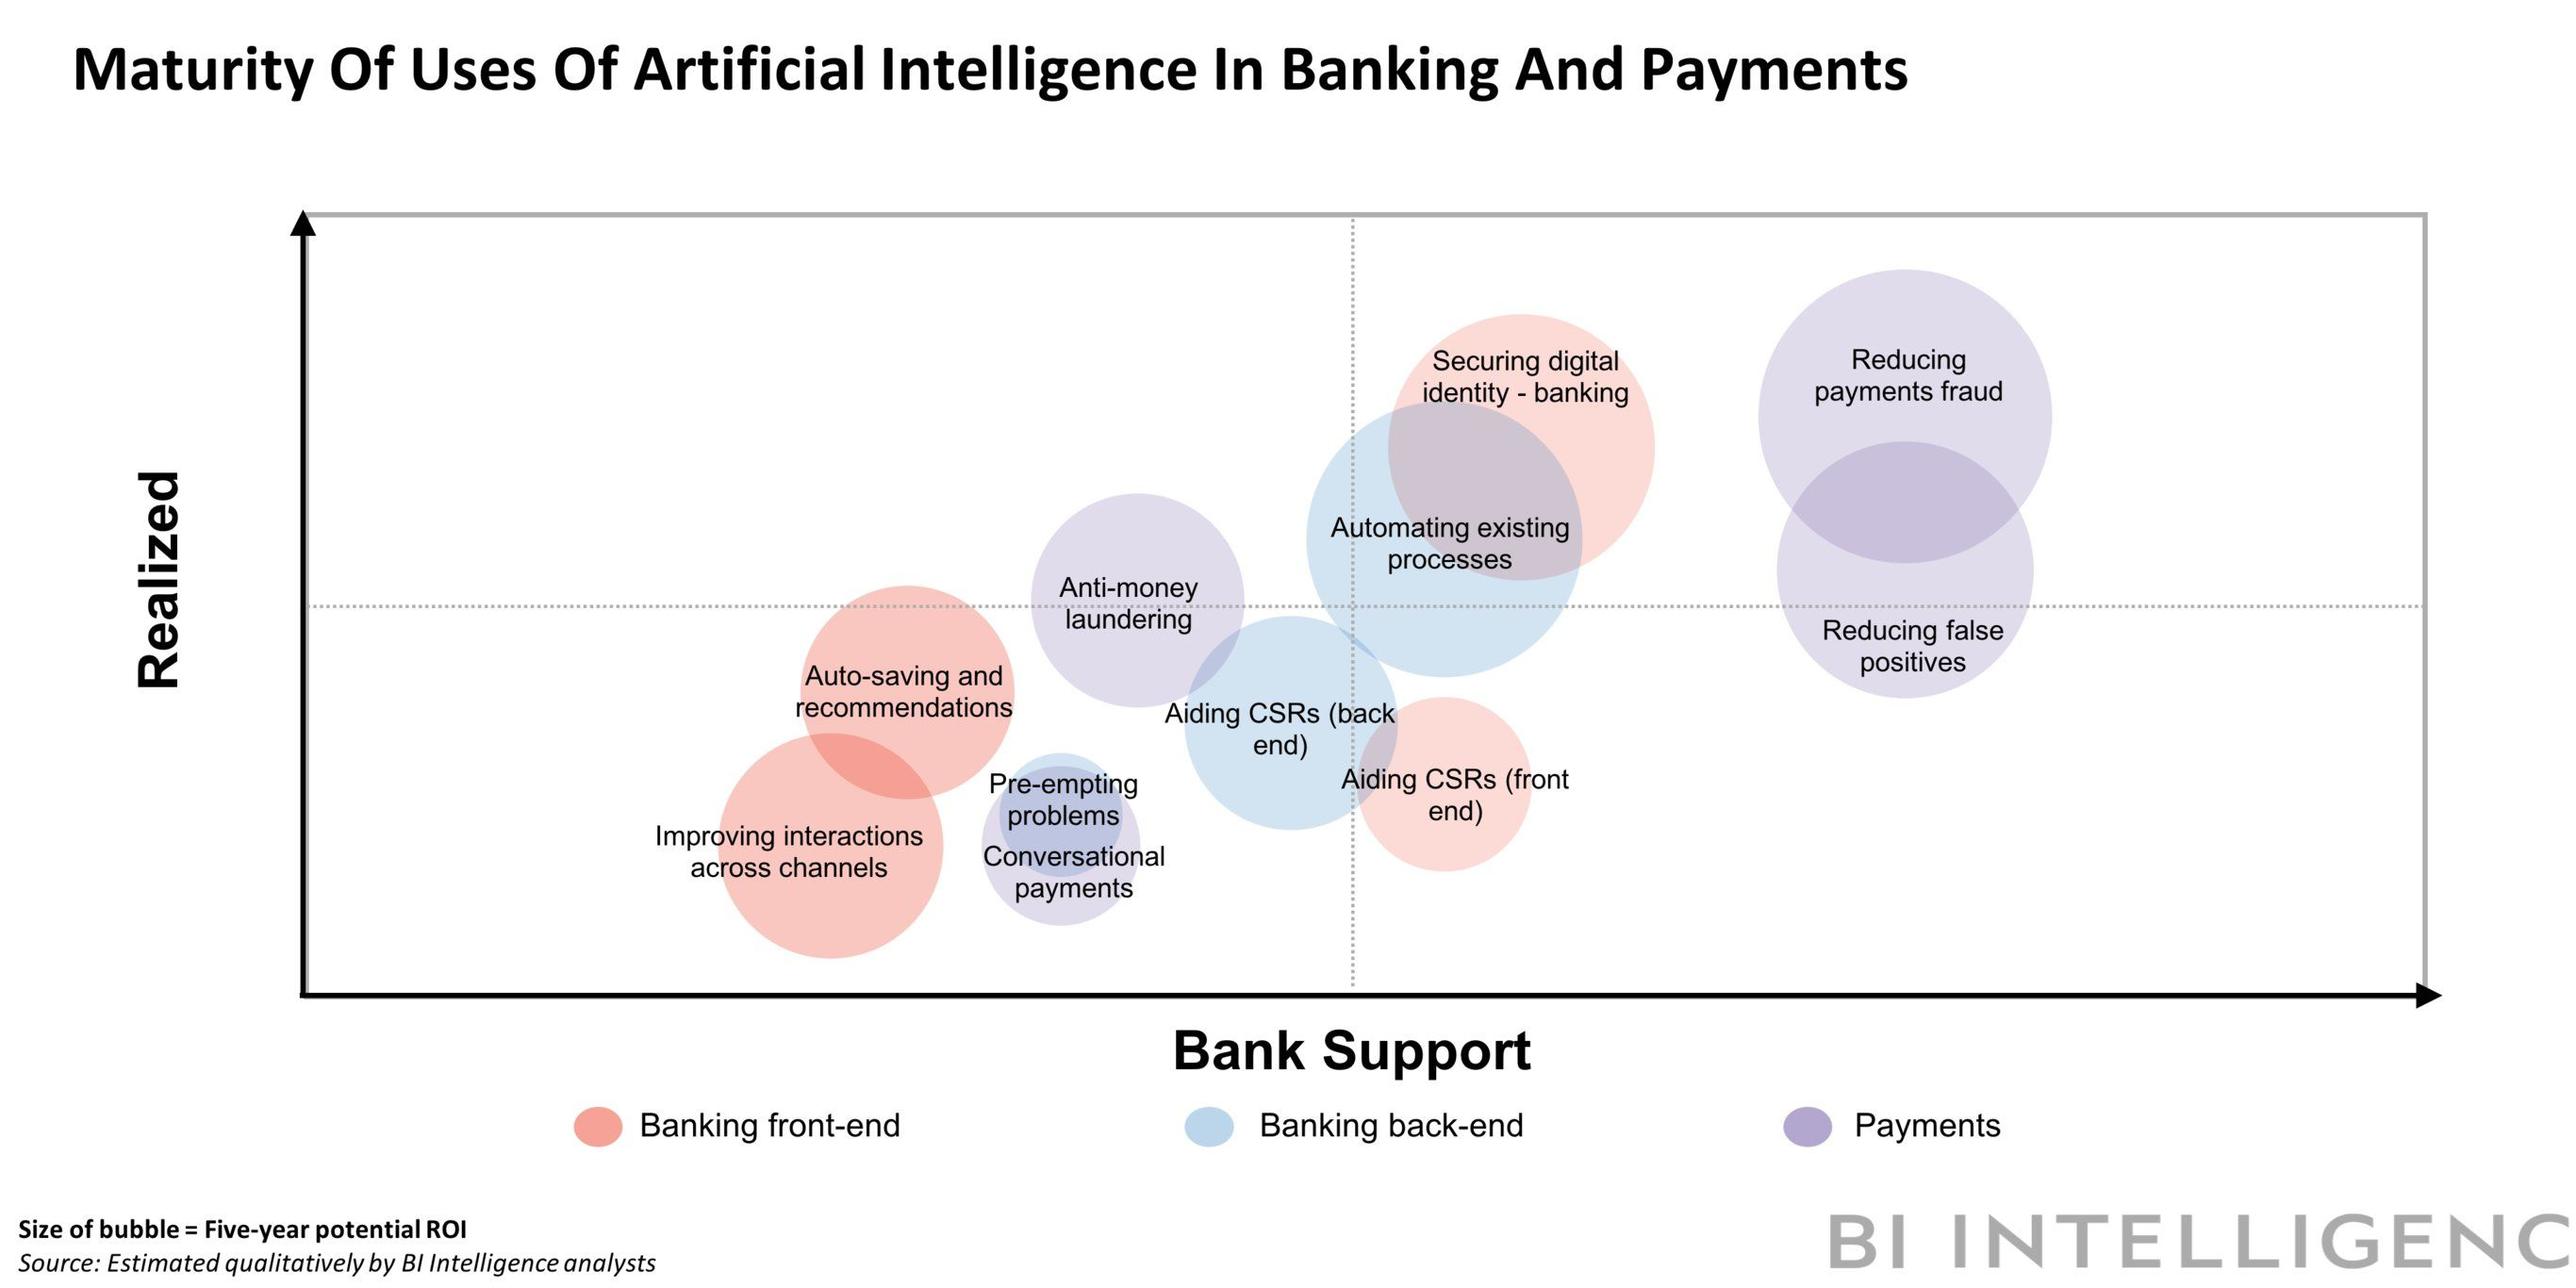 How banks are using artificial intelligence and machine